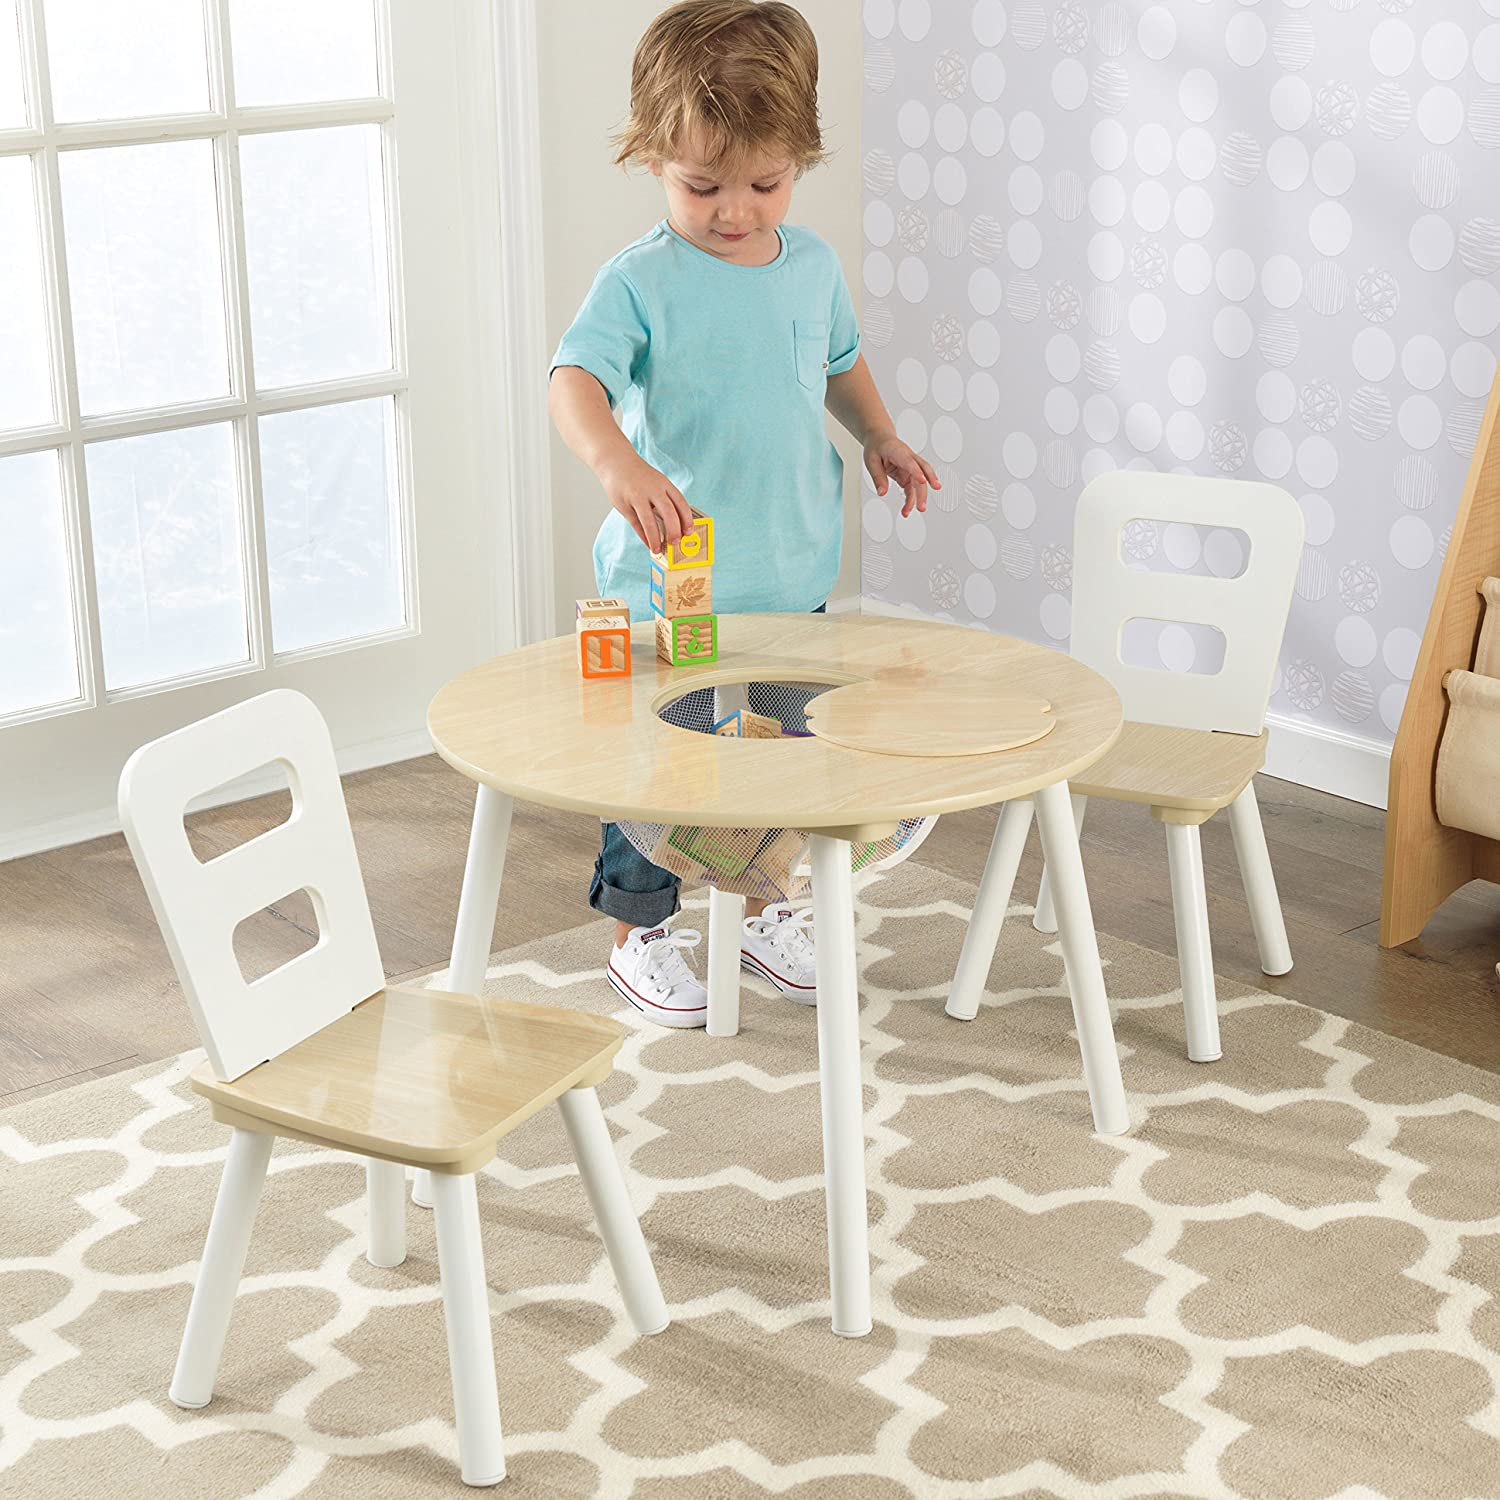 Amazon.com: KidKraft Round Table and 2 Chair Set, White/Natural ...